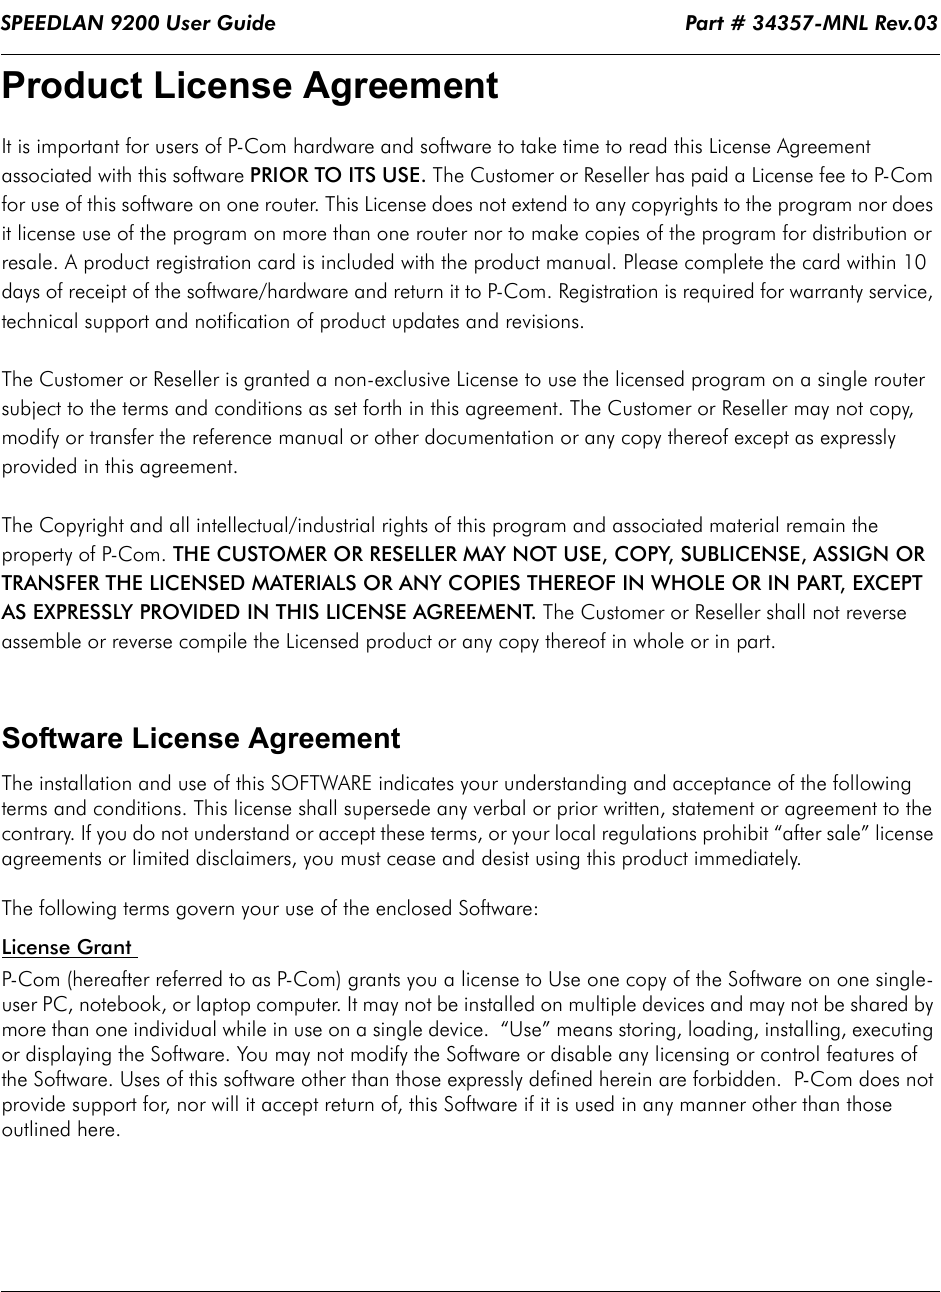 SPEEDLAN 9200 User Guide                                                                   Part # 34357-MNL Rev.03                                            Product License Agreement It is important for users of P-Com hardware and software to take time to read this License Agreement associated with this software PRIOR TO ITS USE. The Customer or Reseller has paid a License fee to P-Com for use of this software on one router. This License does not extend to any copyrights to the program nor does it license use of the program on more than one router nor to make copies of the program for distribution or resale. A product registration card is included with the product manual. Please complete the card within 10 days of receipt of the software/hardware and return it to P-Com. Registration is required for warranty service, technical support and notification of product updates and revisions.  The Customer or Reseller is granted a non-exclusive License to use the licensed program on a single router subject to the terms and conditions as set forth in this agreement. The Customer or Reseller may not copy, modify or transfer the reference manual or other documentation or any copy thereof except as expressly provided in this agreement. The Copyright and all intellectual/industrial rights of this program and associated material remain the property of P-Com. THE CUSTOMER OR RESELLER MAY NOT USE, COPY, SUBLICENSE, ASSIGN OR TRANSFER THE LICENSED MATERIALS OR ANY COPIES THEREOF IN WHOLE OR IN PART, EXCEPT AS EXPRESSLY PROVIDED IN THIS LICENSE AGREEMENT. The Customer or Reseller shall not reverse assemble or reverse compile the Licensed product or any copy thereof in whole or in part.   Software License AgreementThe installation and use of this SOFTWARE indicates your understanding and acceptance of the following terms and conditions. This license shall supersede any verbal or prior written, statement or agreement to the contrary. If you do not understand or accept these terms, or y